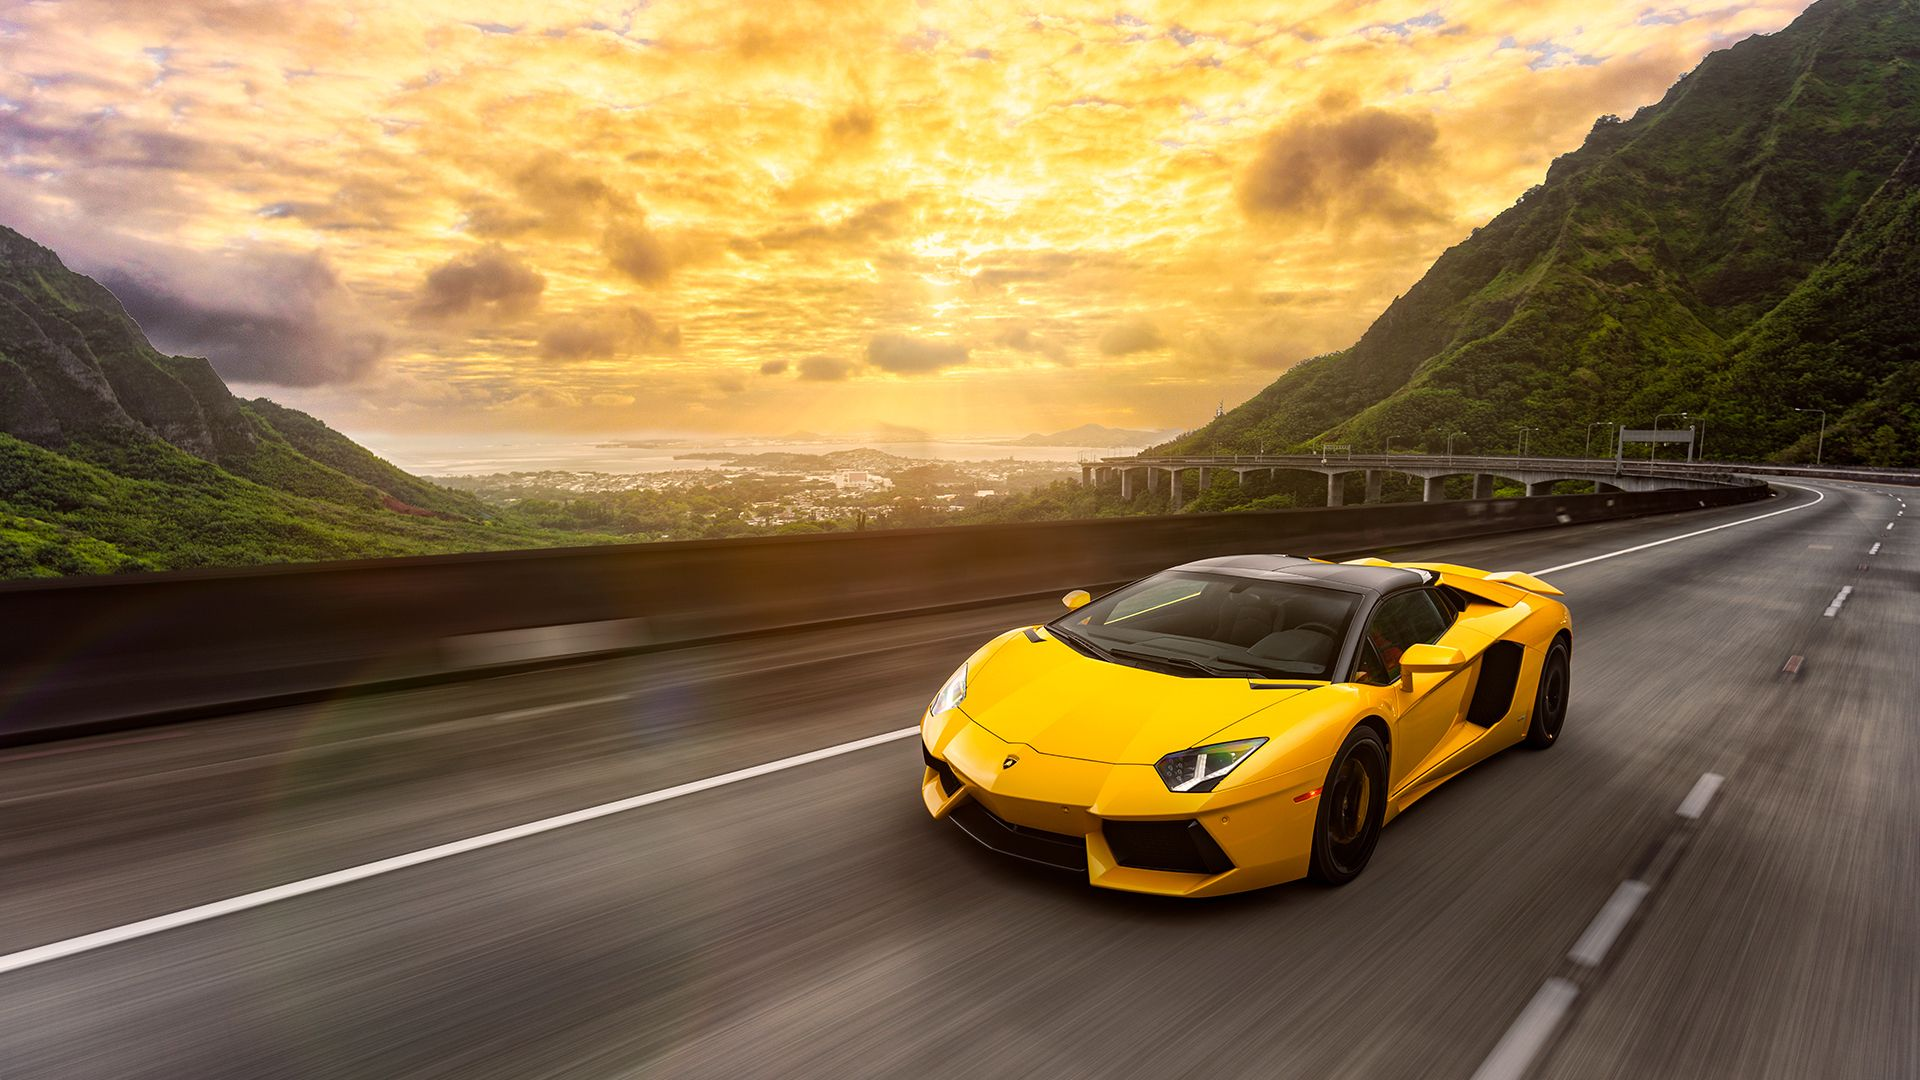 1920x1200 Download Lamborghini Wallpapers In HD For Desktop And Mobile Here. 1920x1200 Download ...